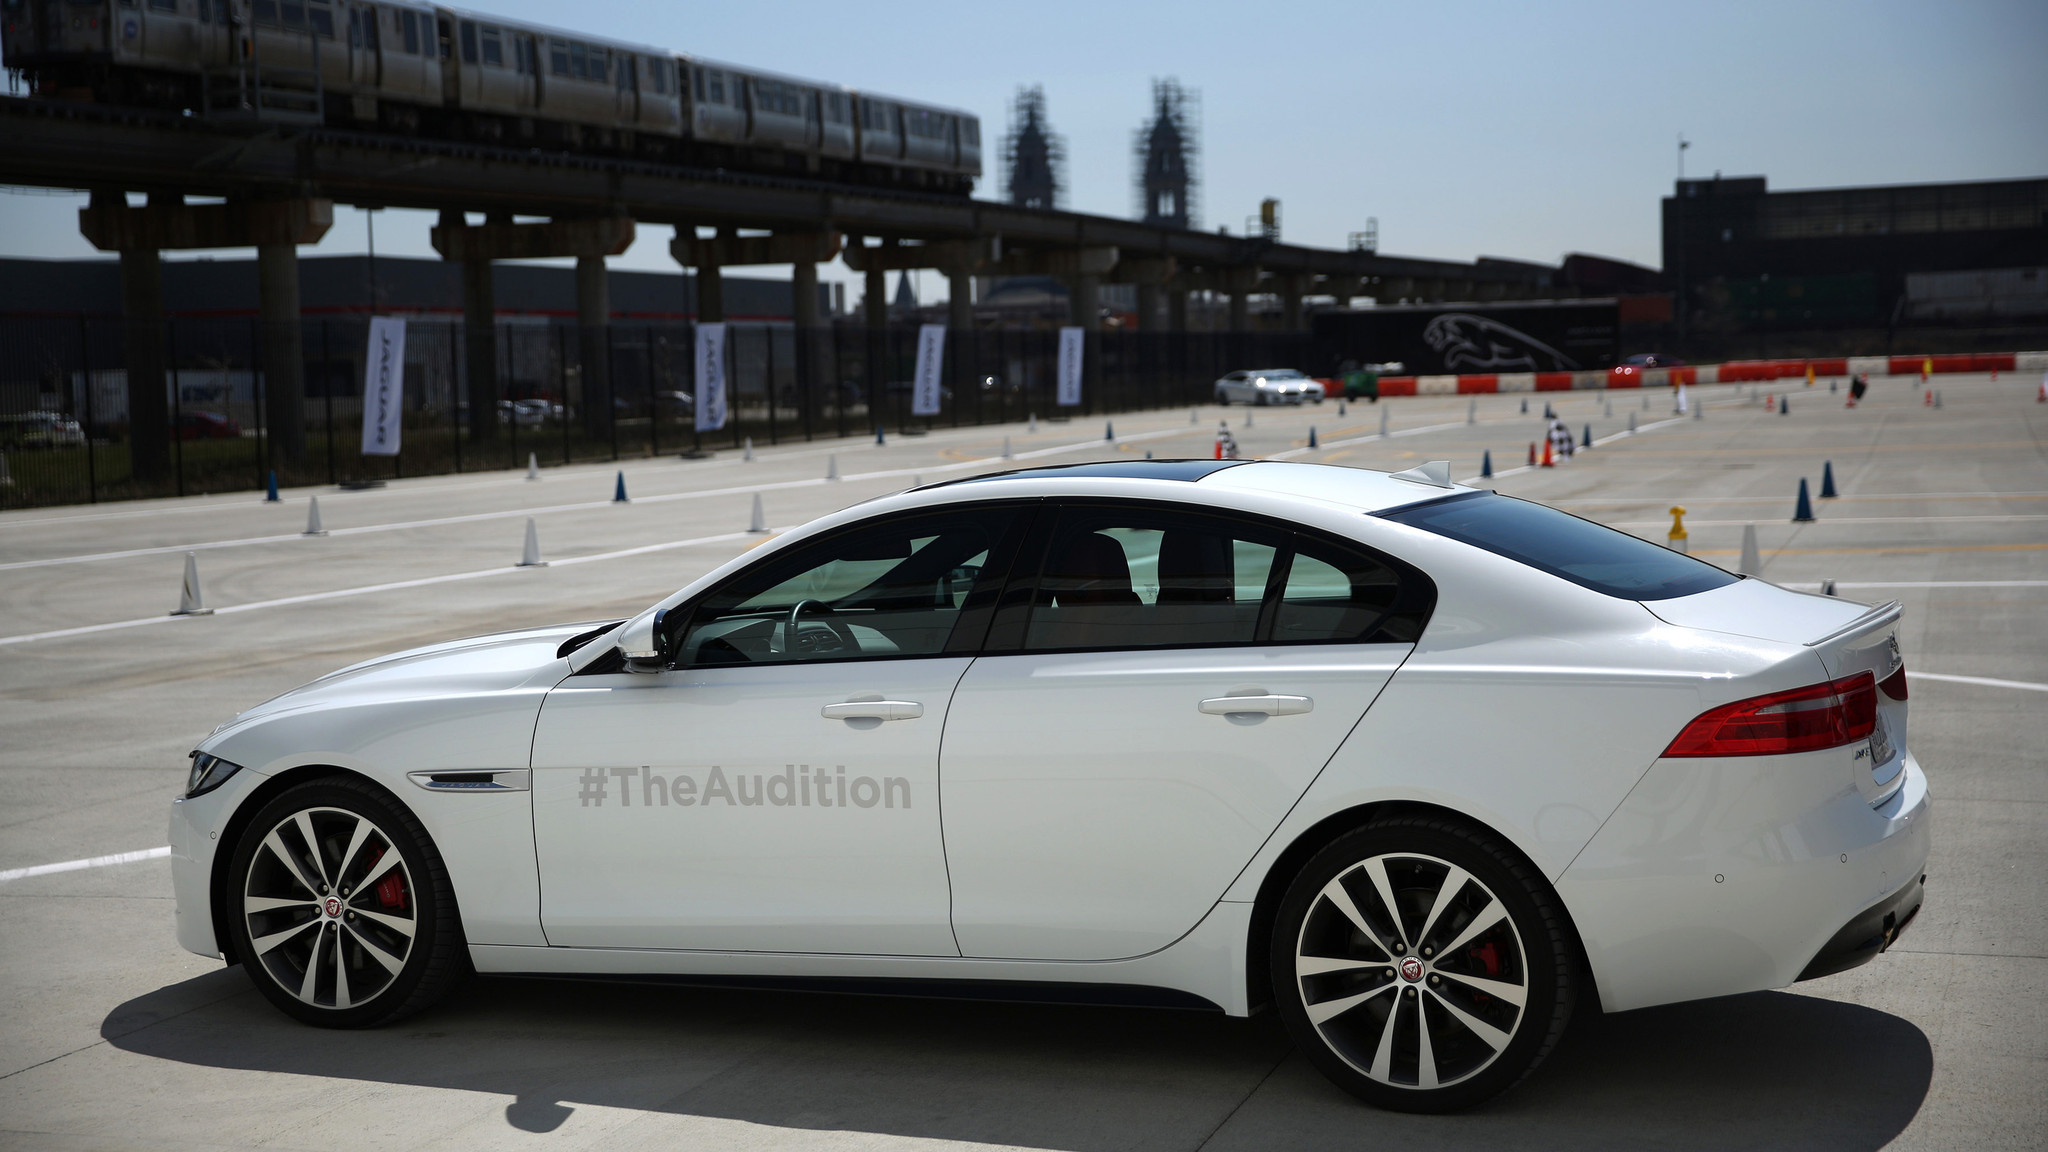 com cars used auto xf sale img and in new jaguar for ct middletown